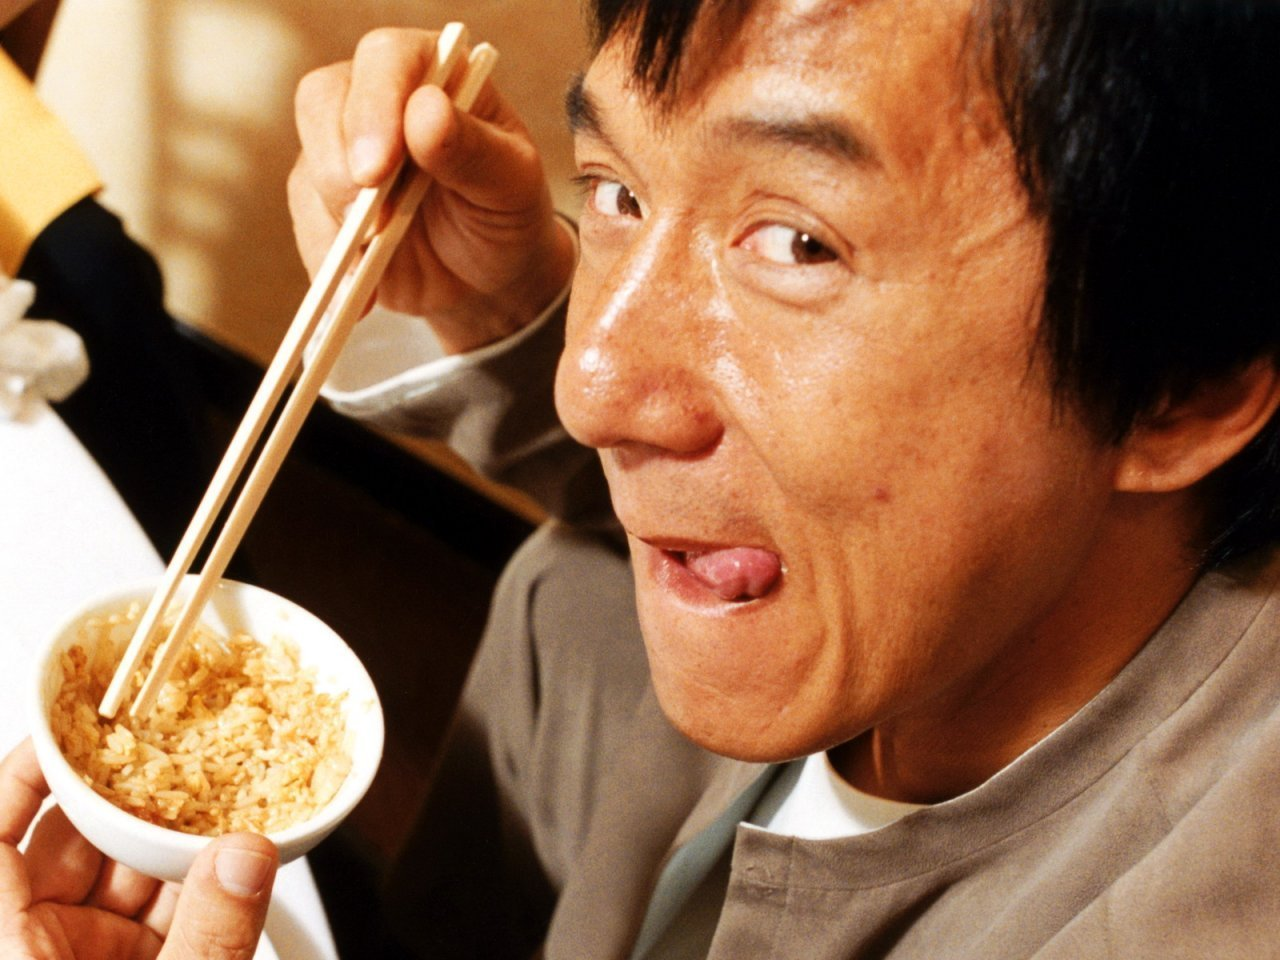 28 Jackie Chan Jokes by professional comedians!